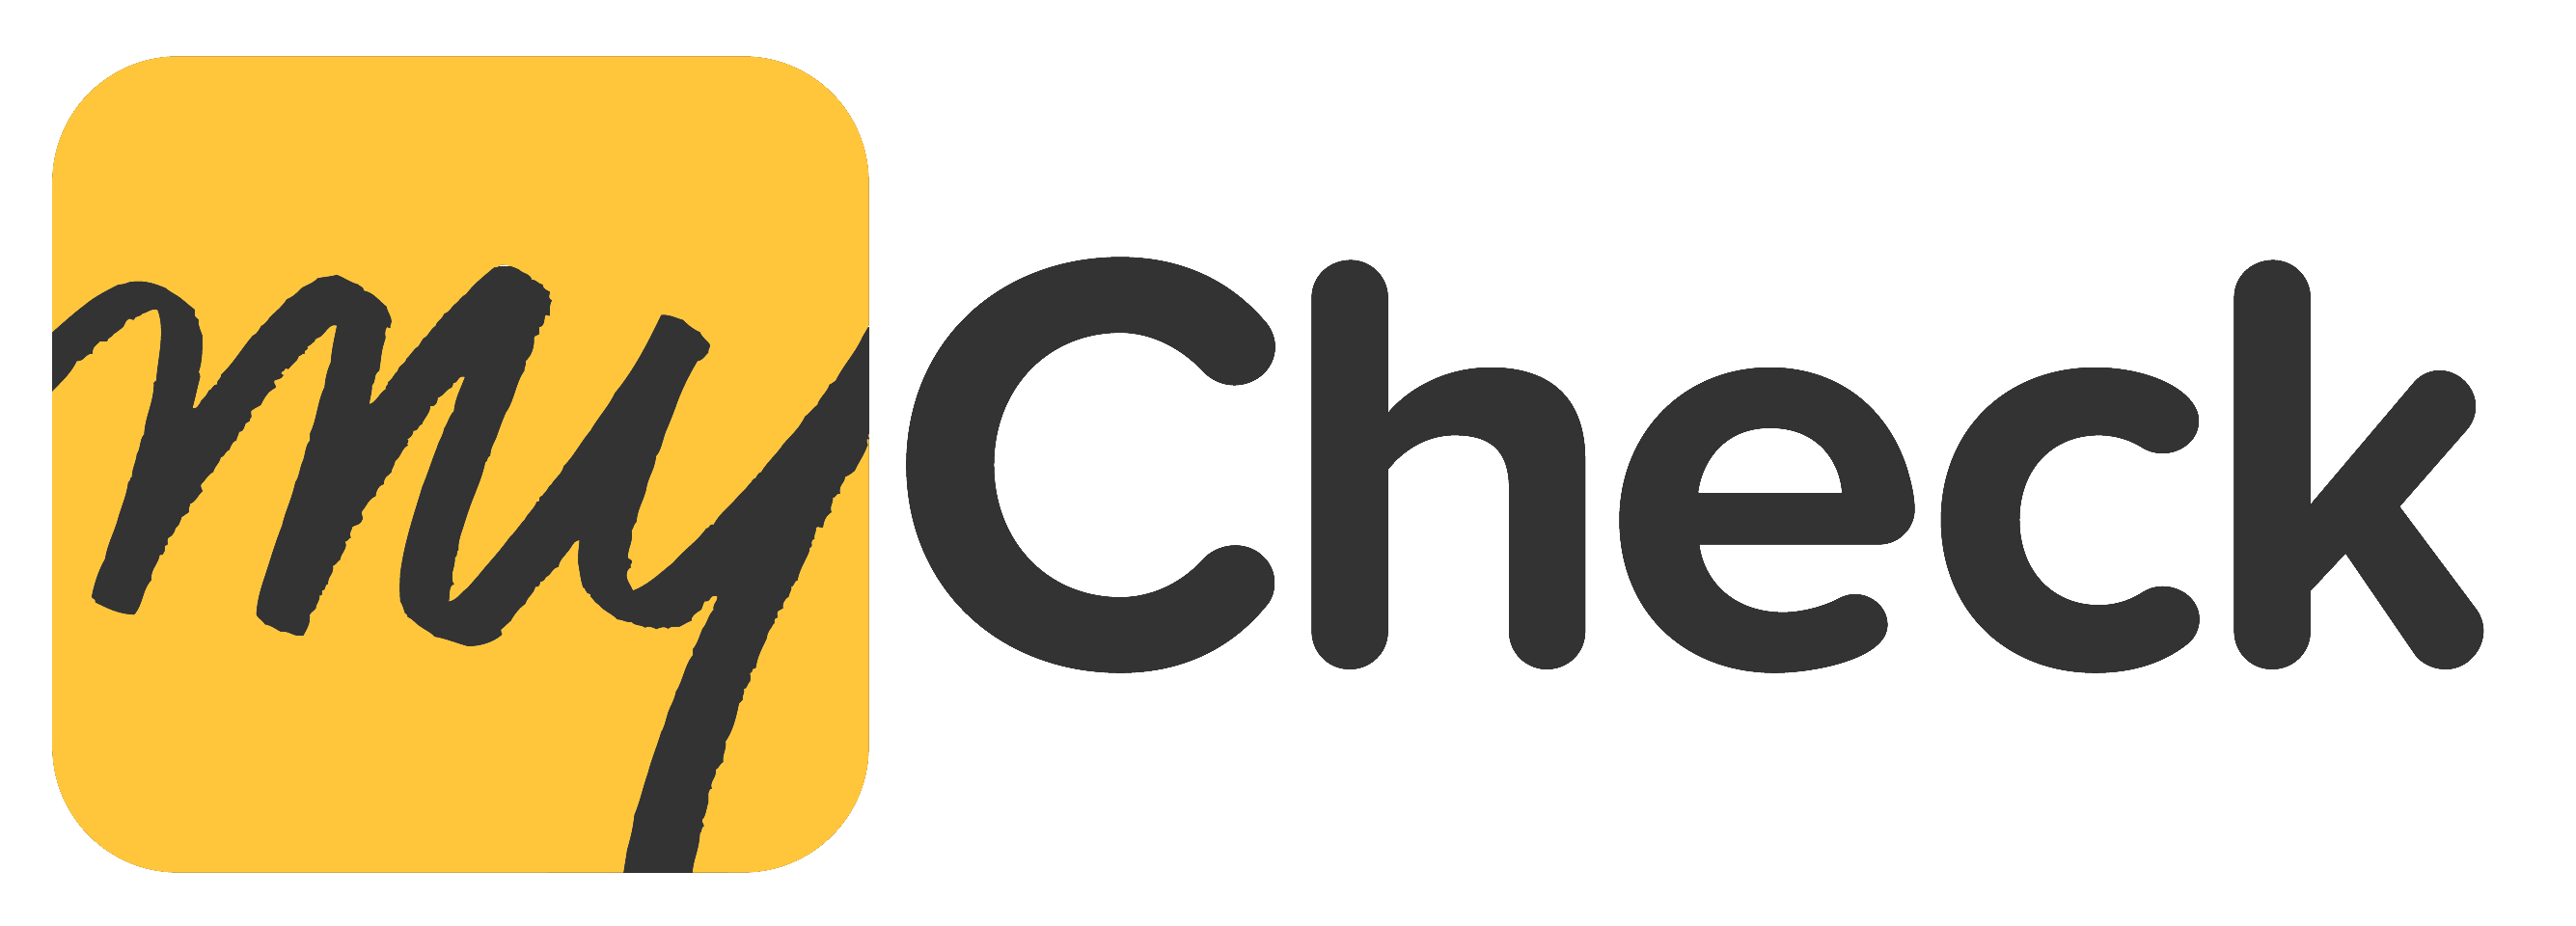 MyCheck - Mobile Payment Simplified. Create an enhanced mobile experience for your customers.